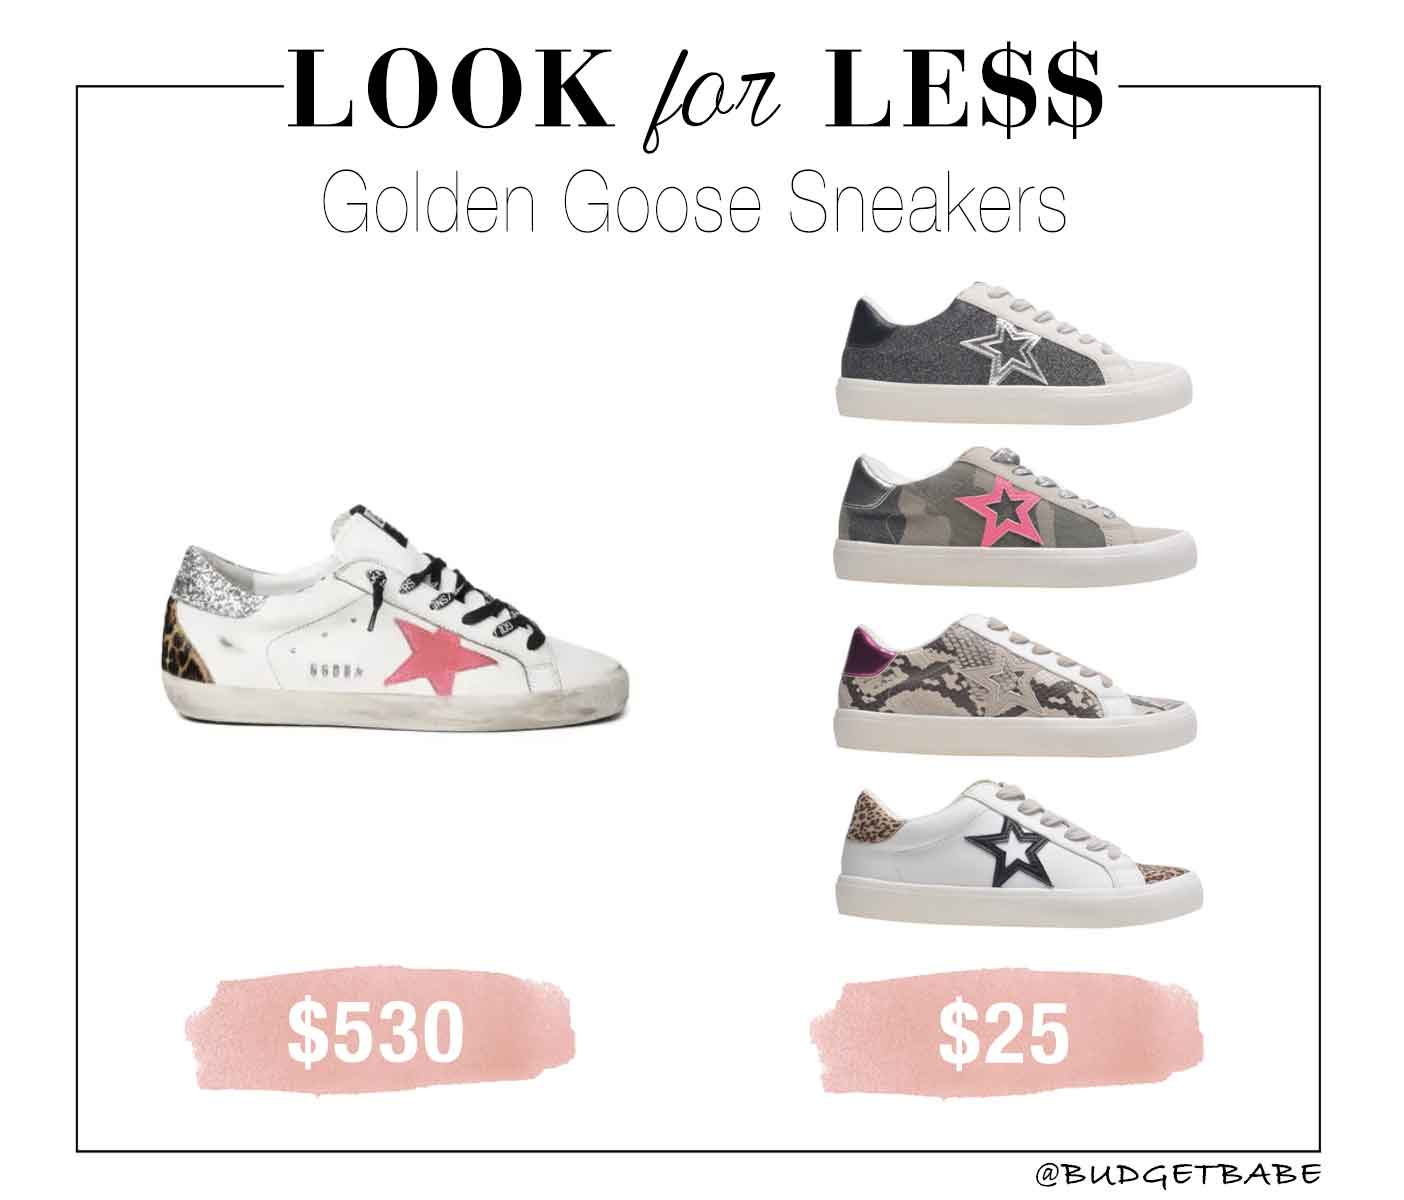 Walmart star sneakers for $24.98! Want them all